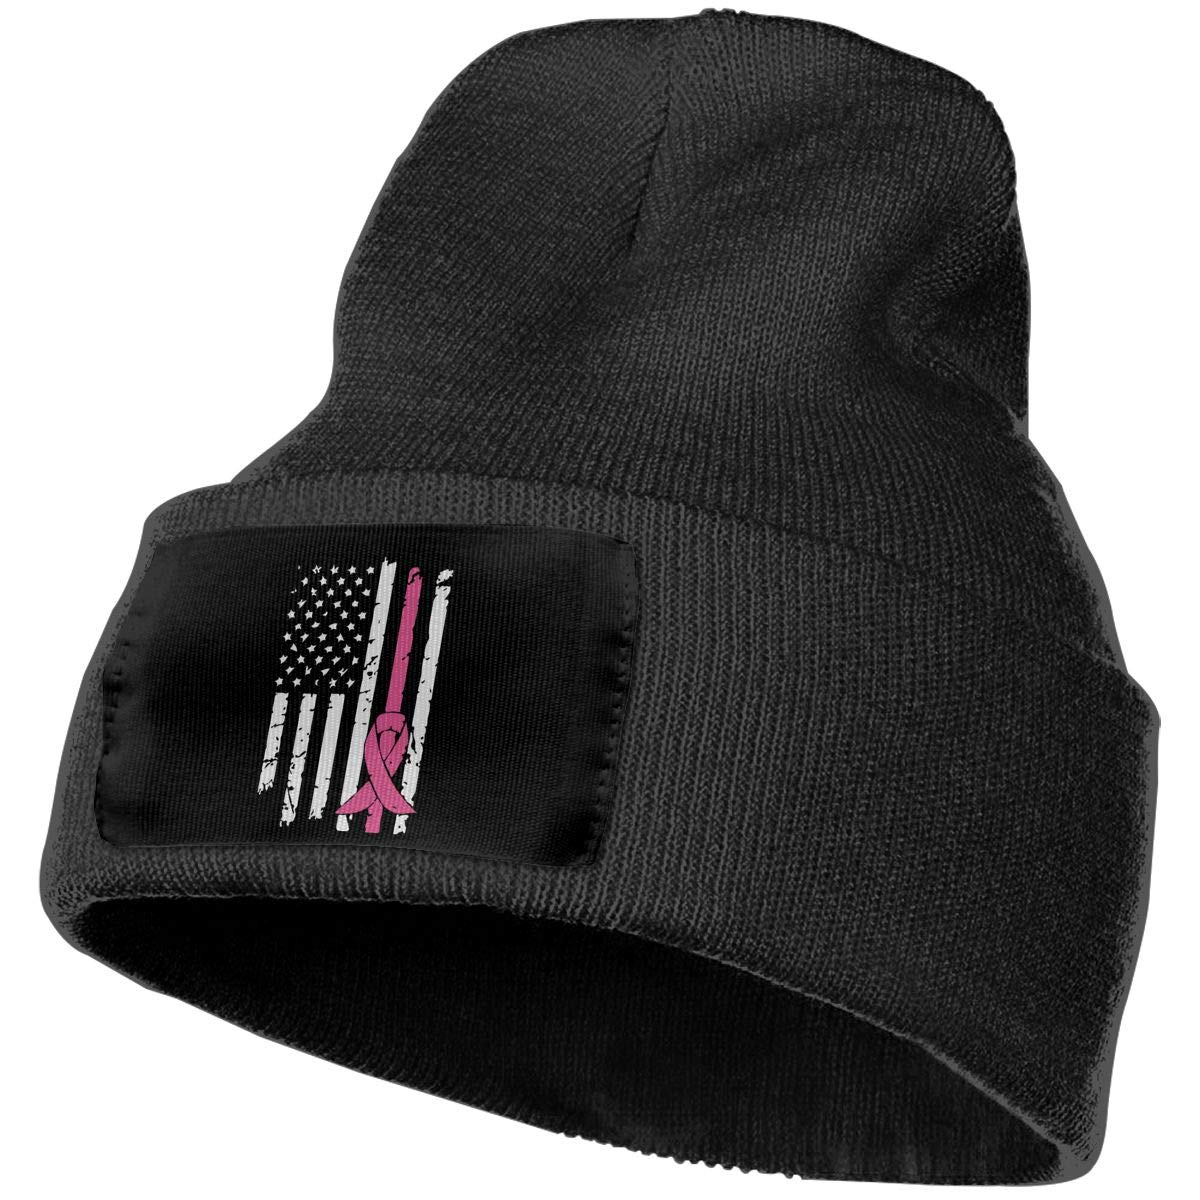 COLLJL-8 Unisex Breast Cancer Awareness Flag Outdoor Warm Knit Beanies Hat Soft Winter Knit Caps